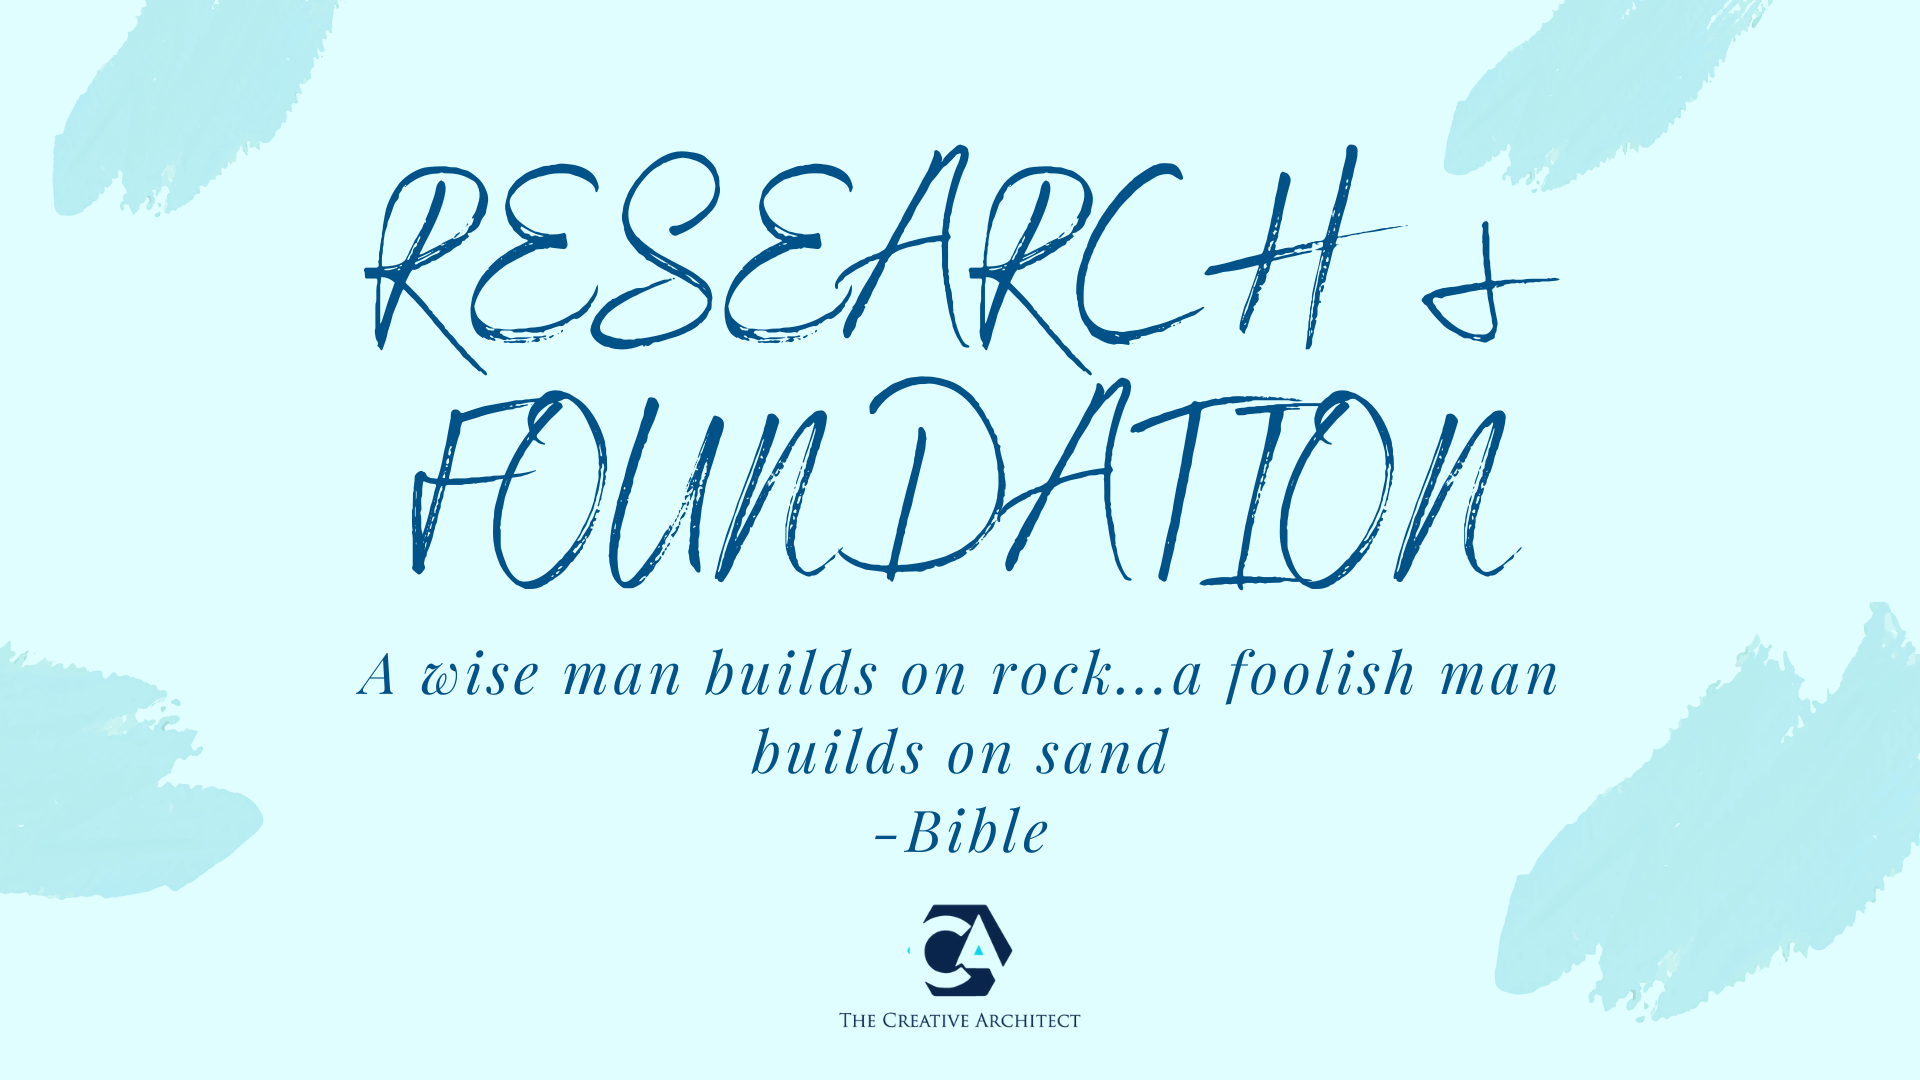 Research & Foundation